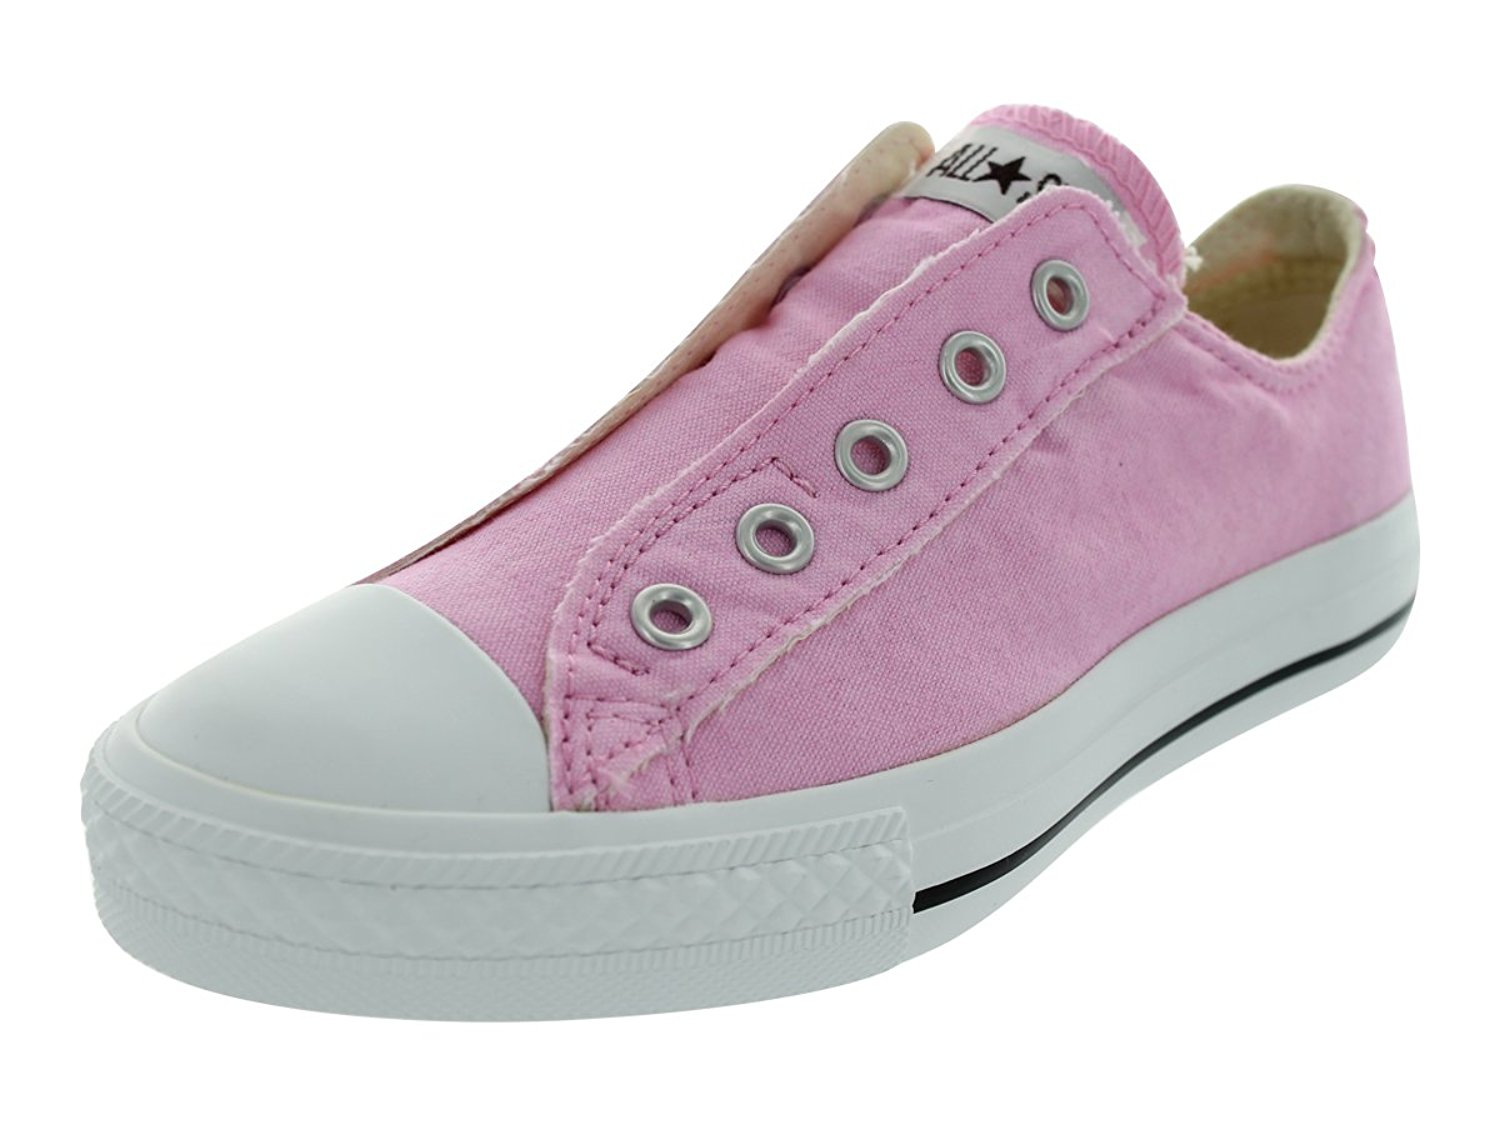 f3e6a8db4c81 Get Quotations · Converse All Star Low Top Slip On Shoes Girls 2.5